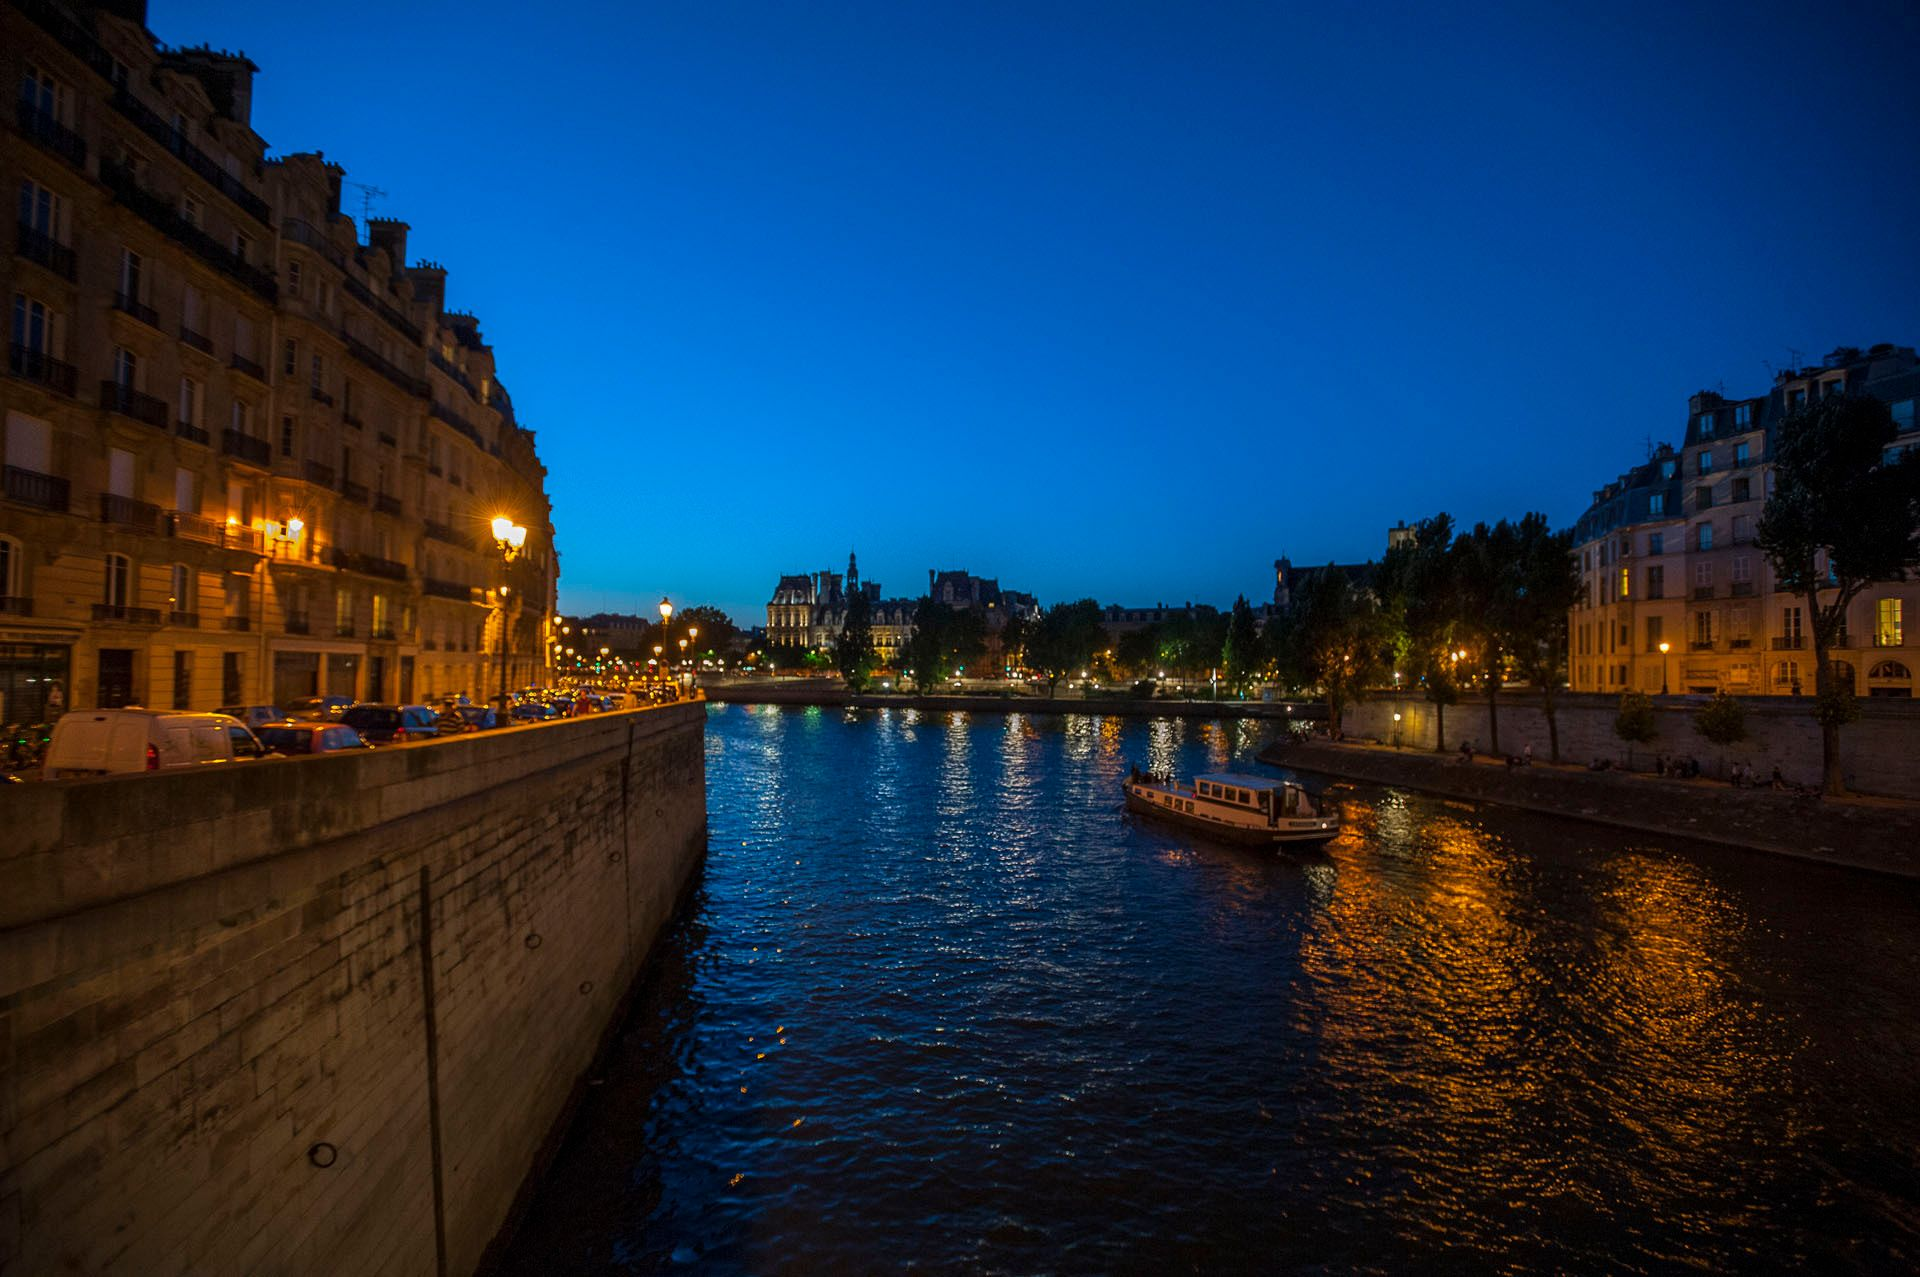 The Seine with boat in Paris, France